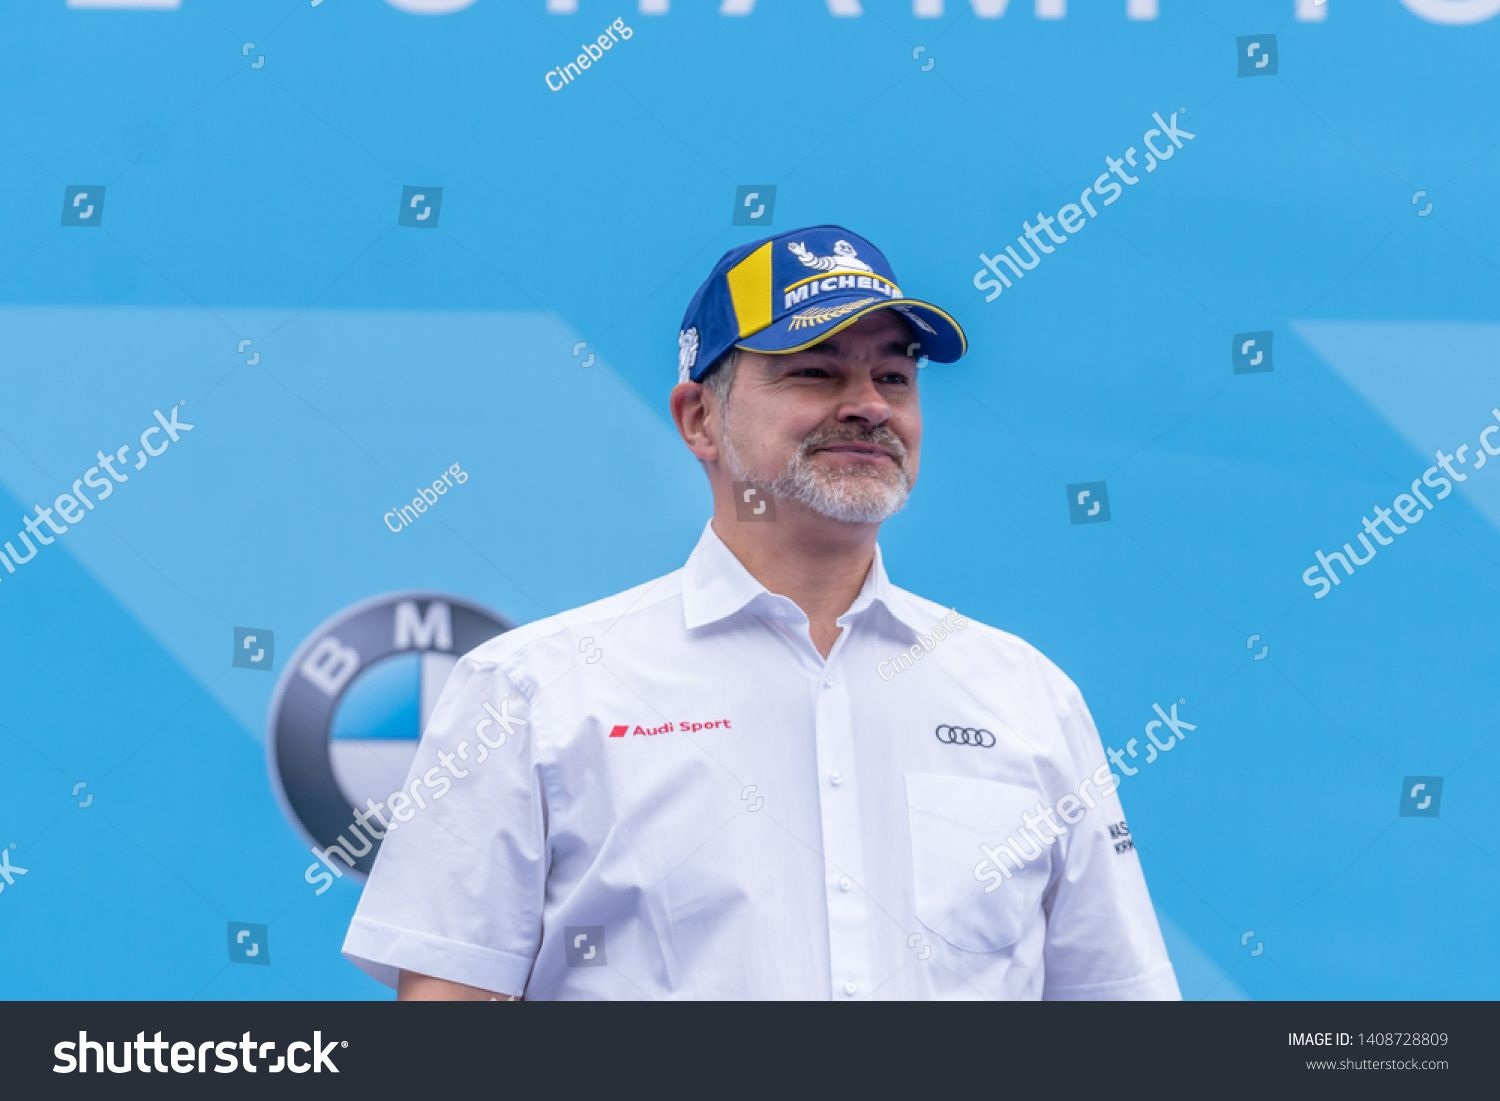 Berlin, Germany - May 25, 2019: Dieter Gass, head of Audi Motorsport, on the podium at the E-Prix A